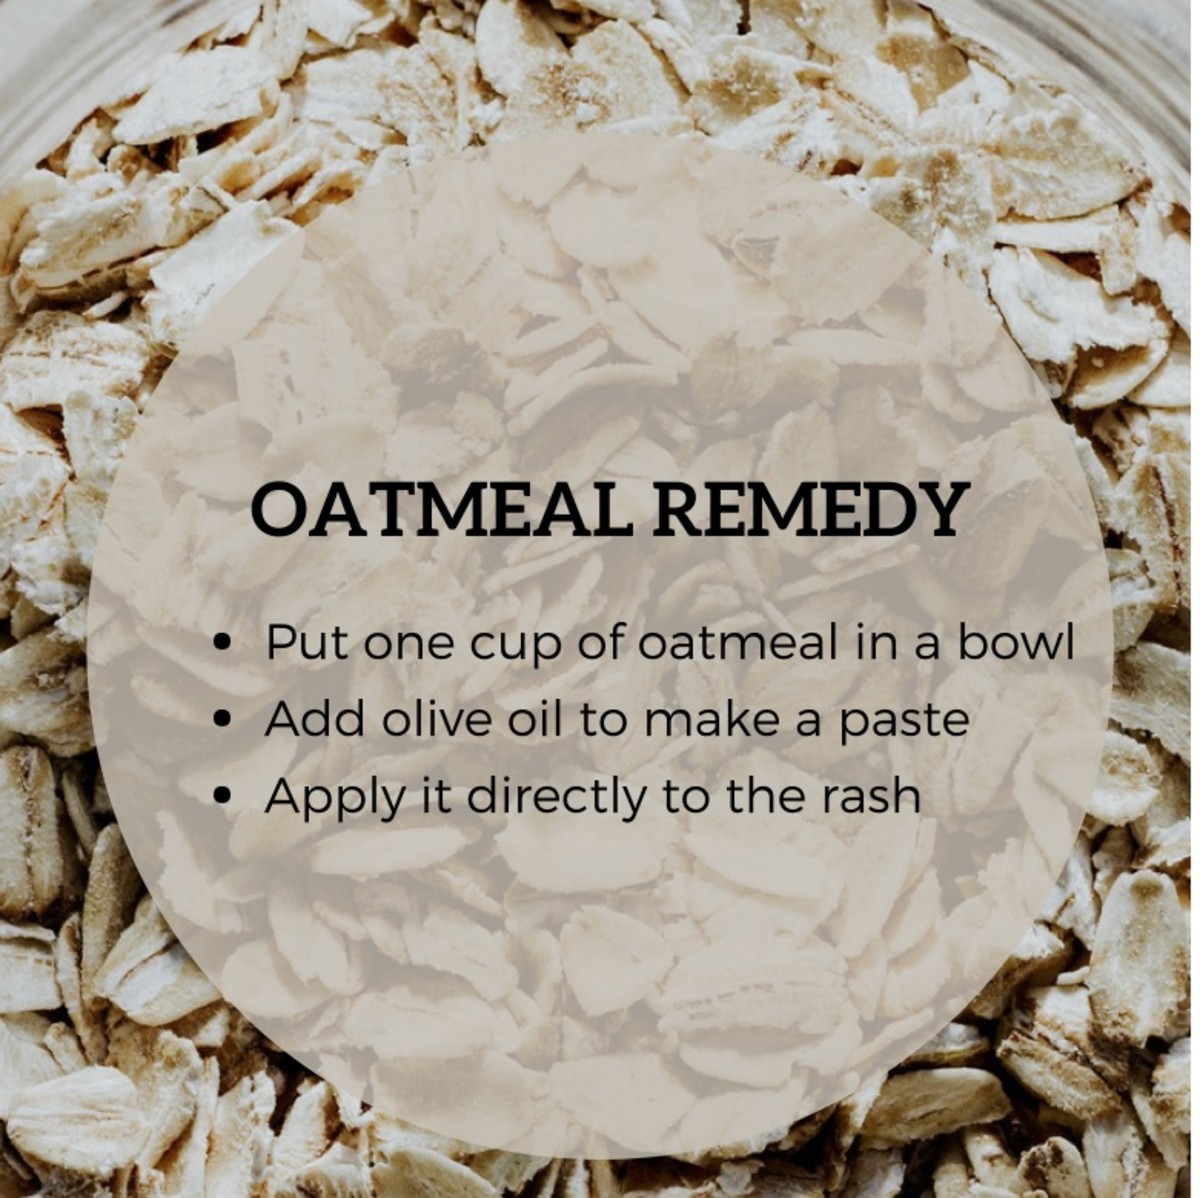 Oatmeal can be made into a paste and applied directly to the rash.